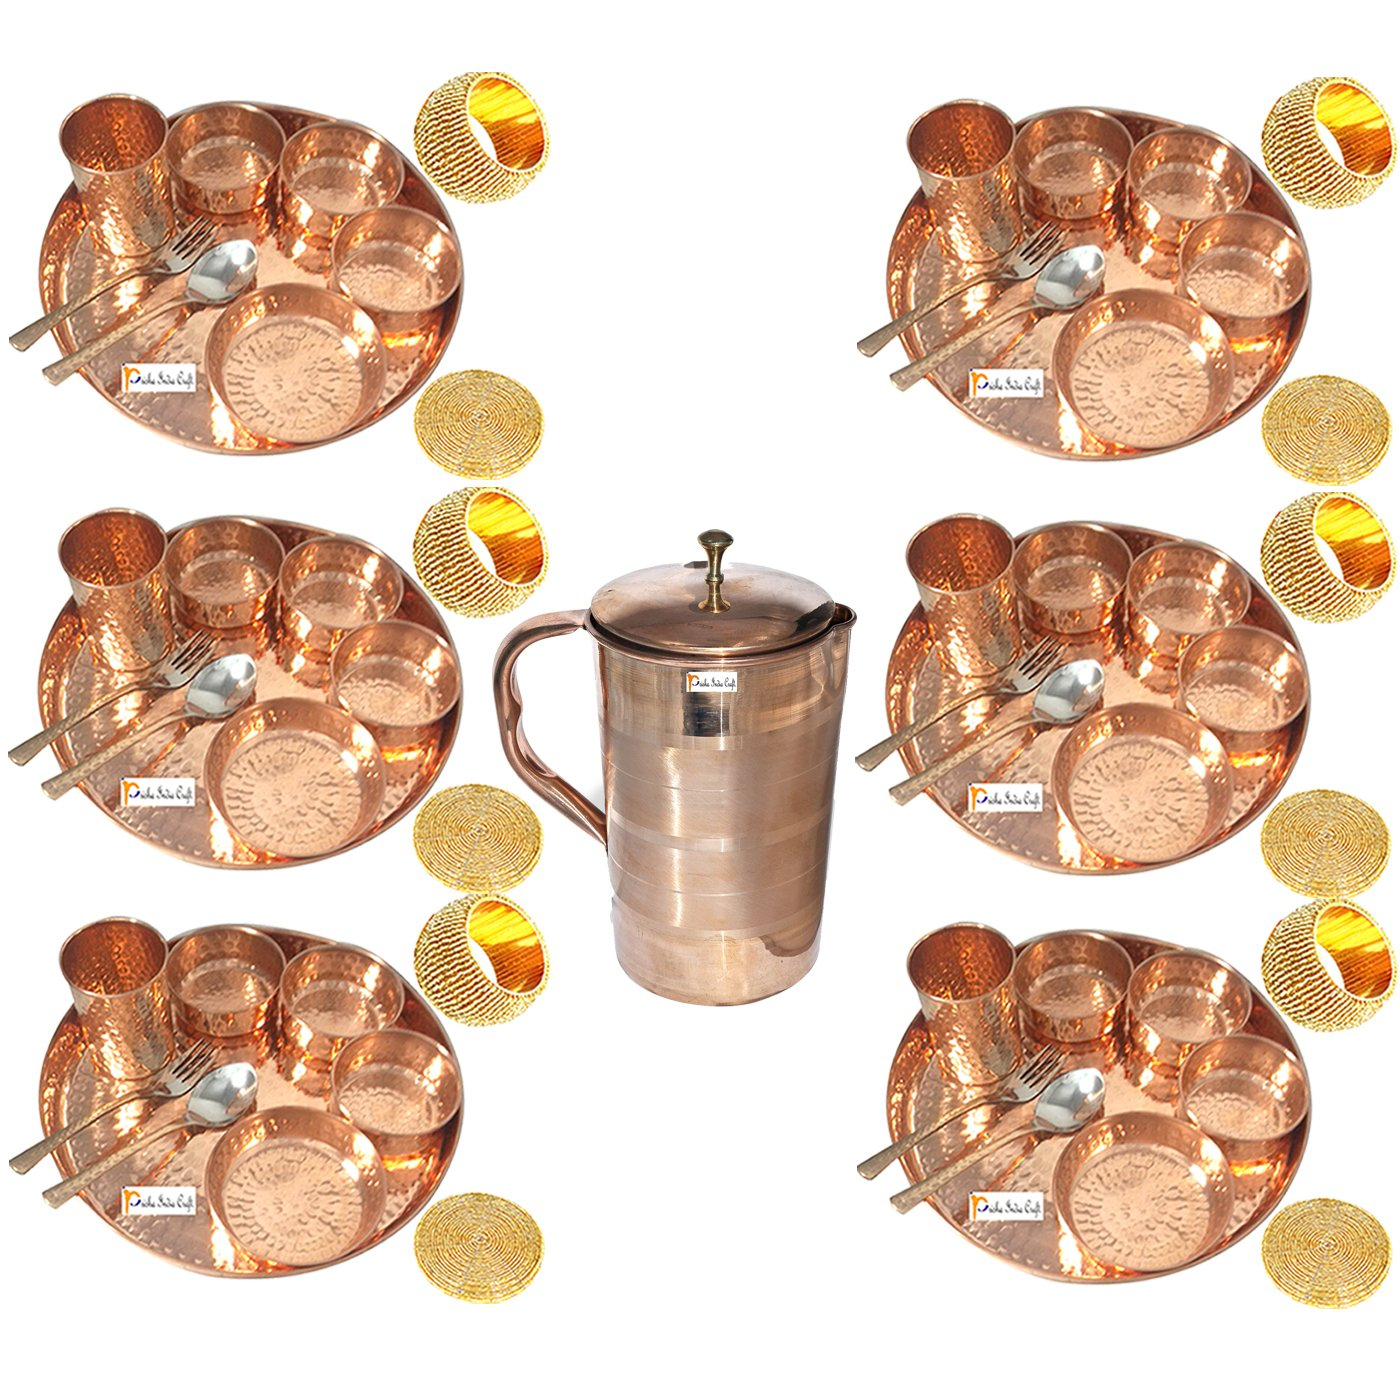 Prisha India Craft Set of 6 Indian Dinnerware Pure Copper Thali Set Traditional Dinner Set of Thali Plate Dia 12'', Bowl, Spoon, Fork, Glass and JUG - Christmas Gift